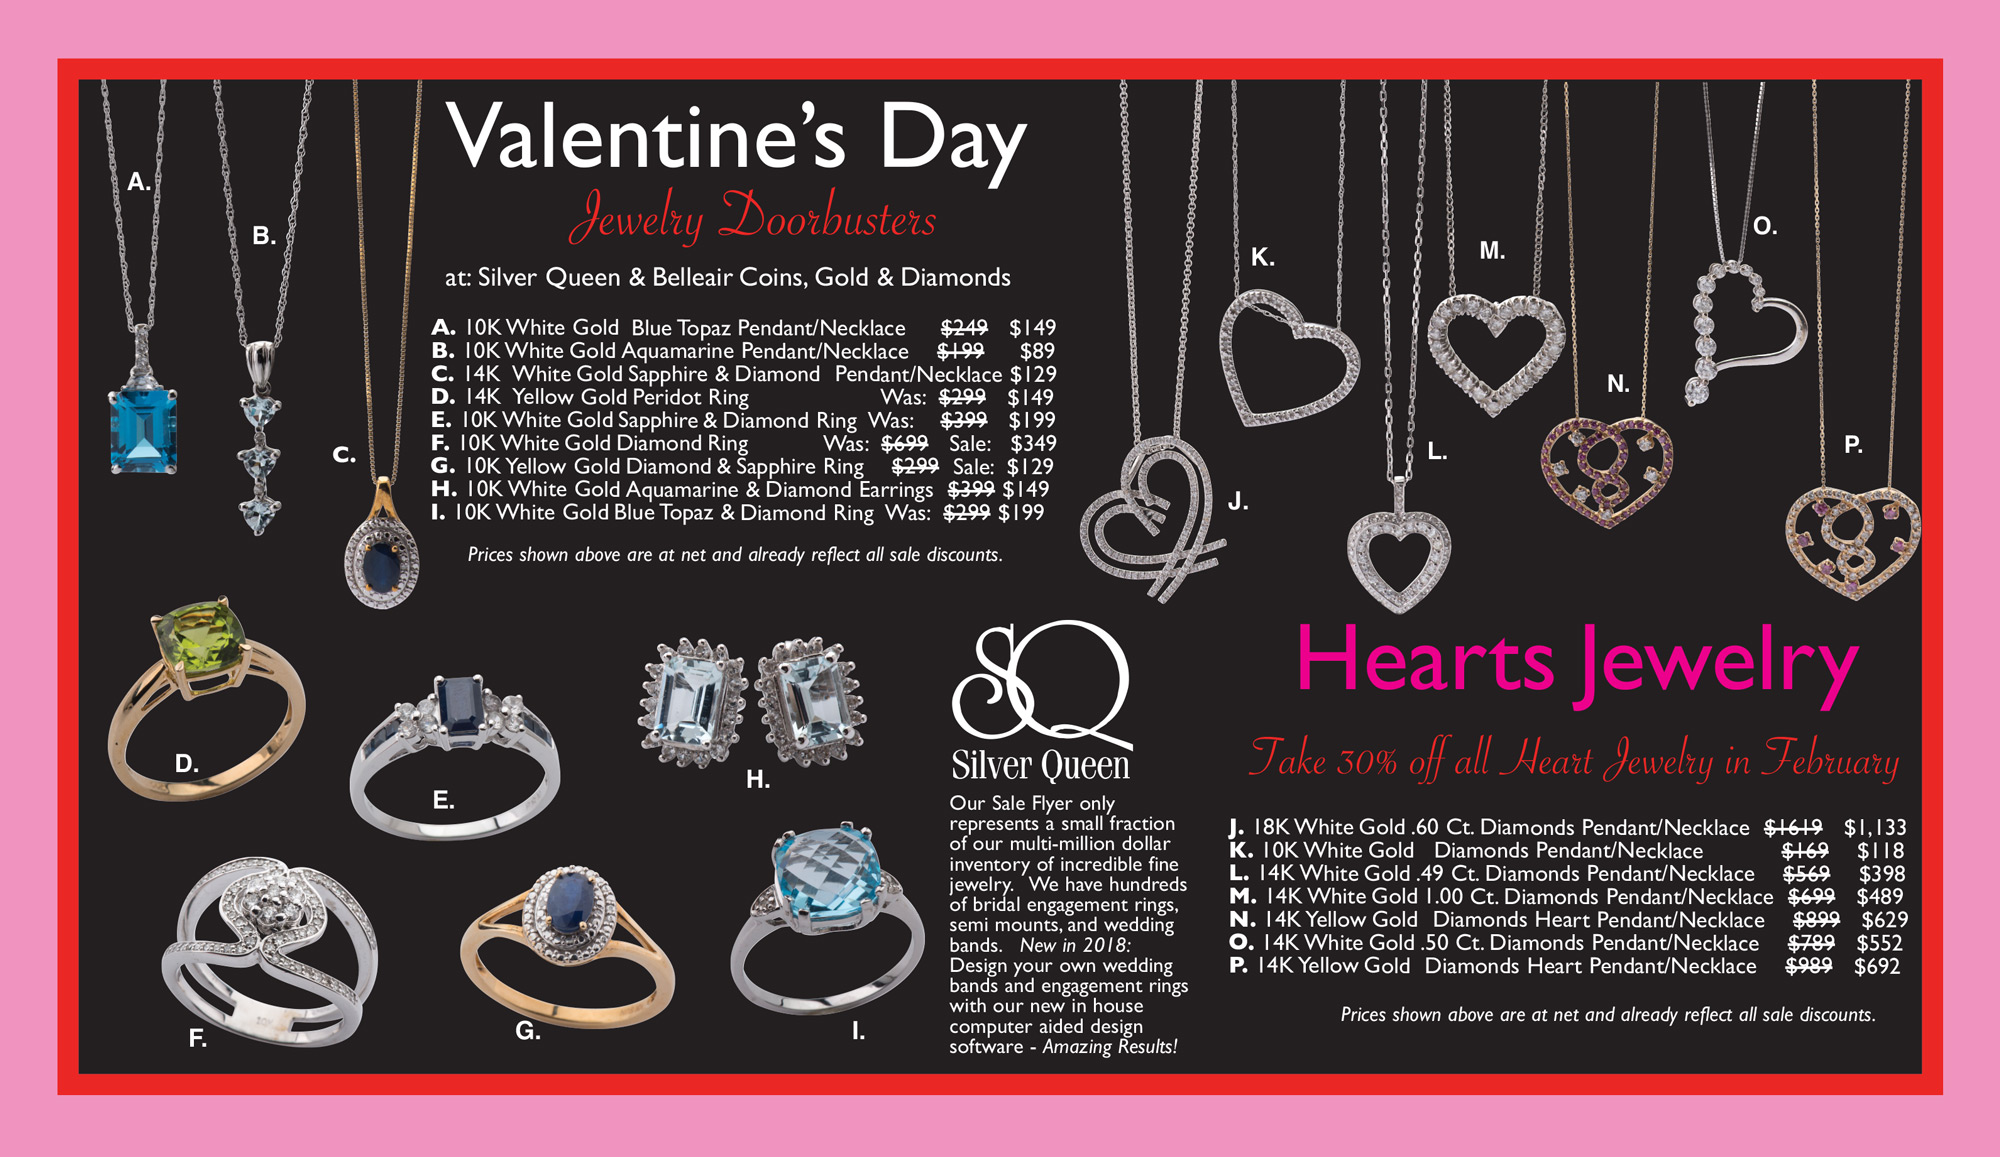 Valentines Day Jewelry year 2018 page 1